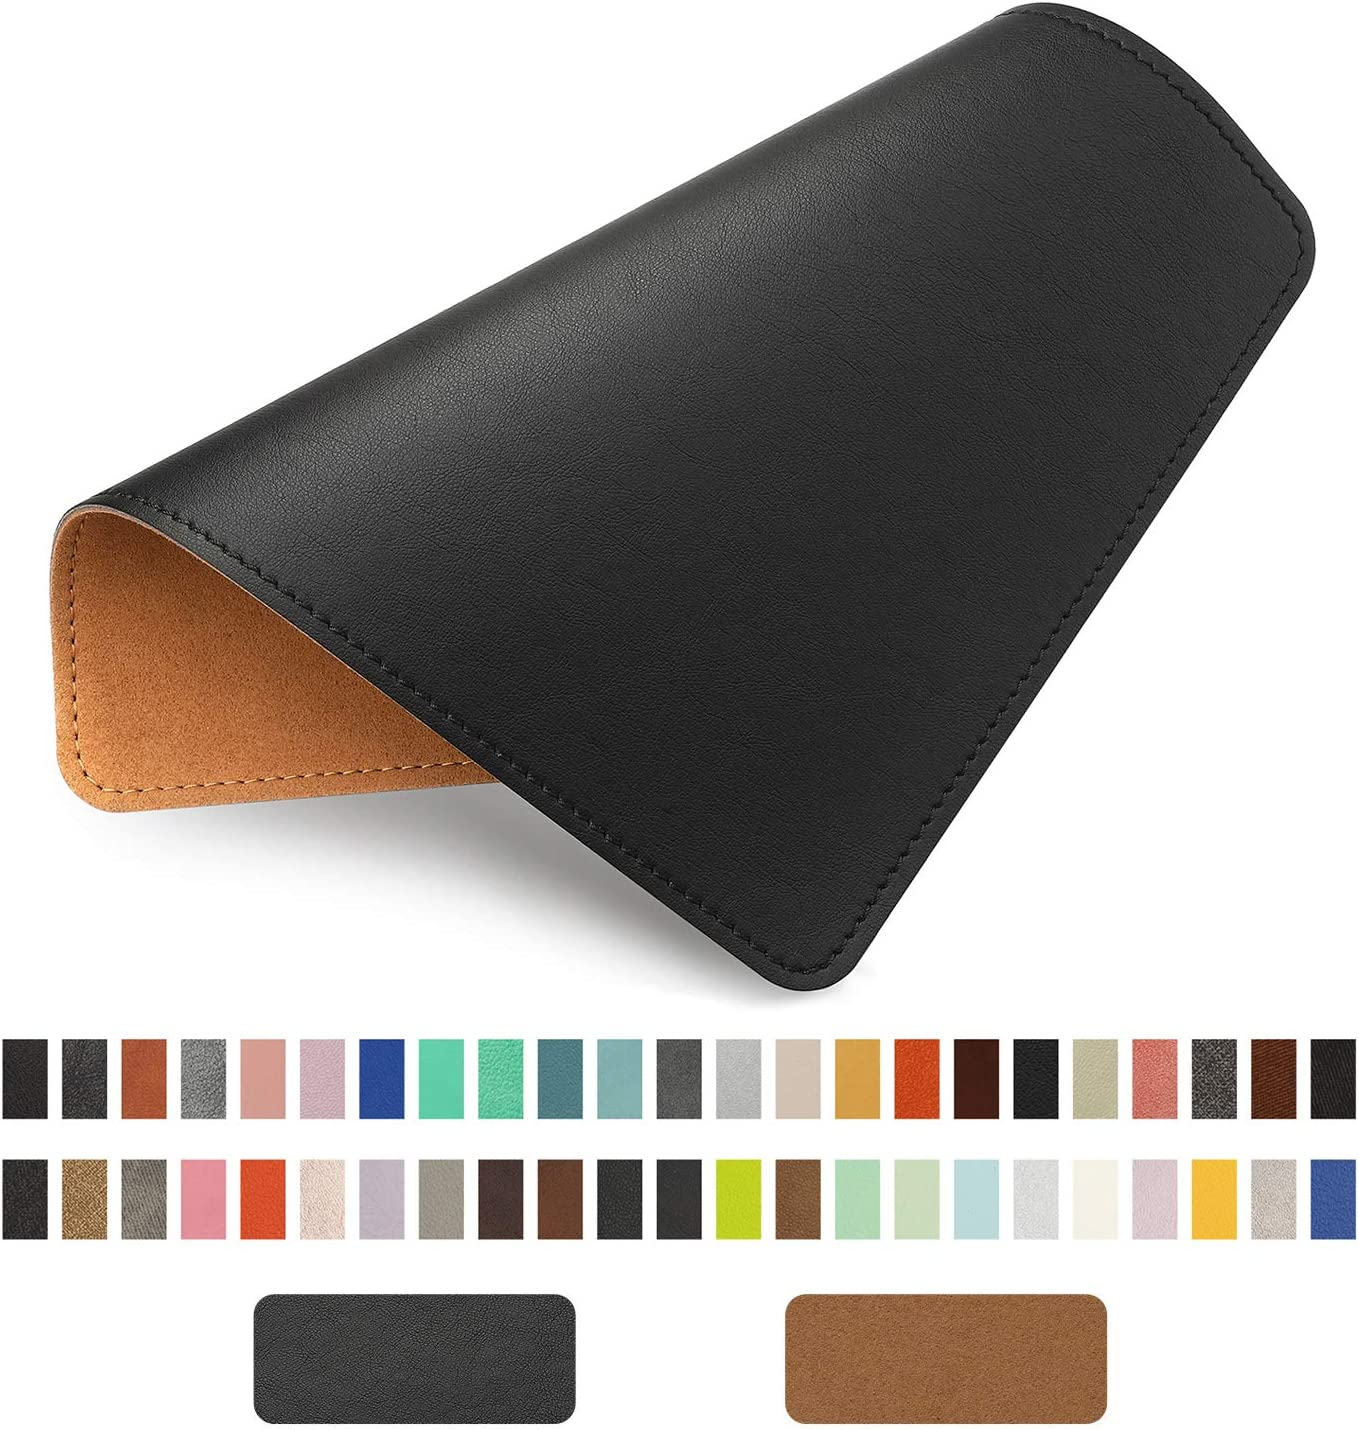 PU Leather Mouse Pad with Stitched Edge Micro-Fiber Base with Non-Slip, Waterproof, Mouse Pad for Computers, Laptop, Office & Home,1 Pack, 8inch11inch (Black)